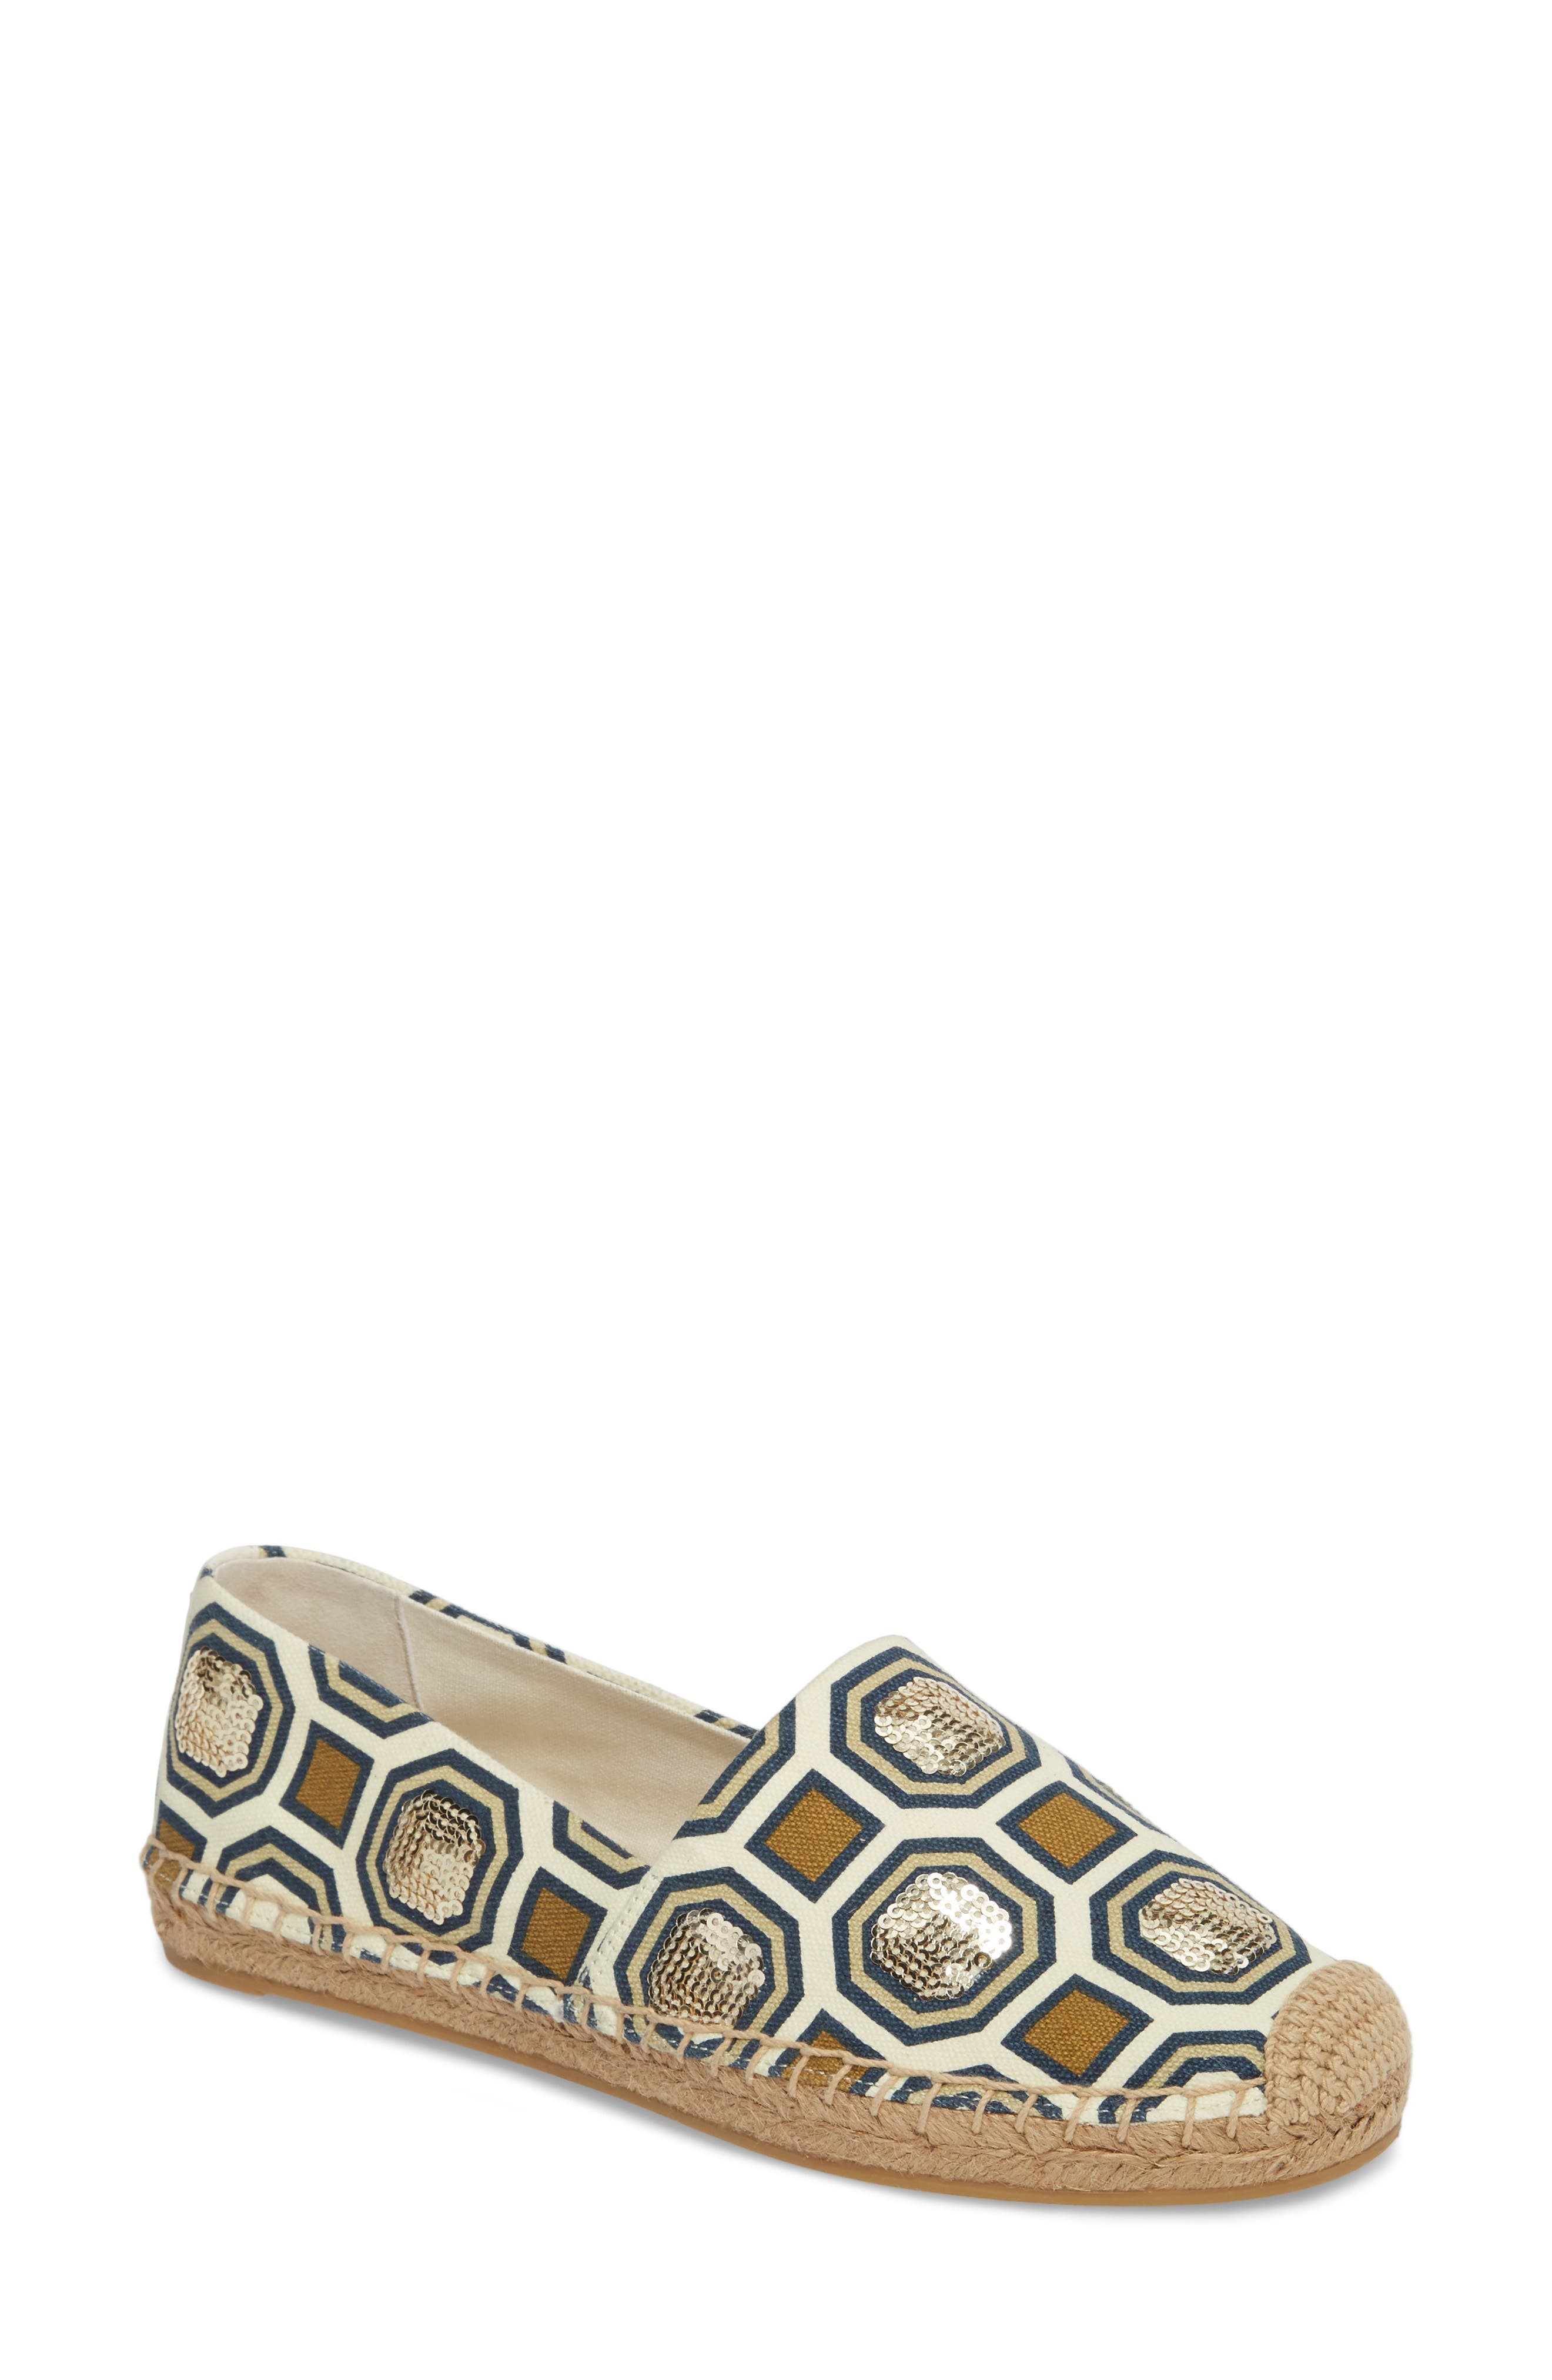 Cecily Sequin Embellished Espadrille,                             Main thumbnail 1, color,                             250